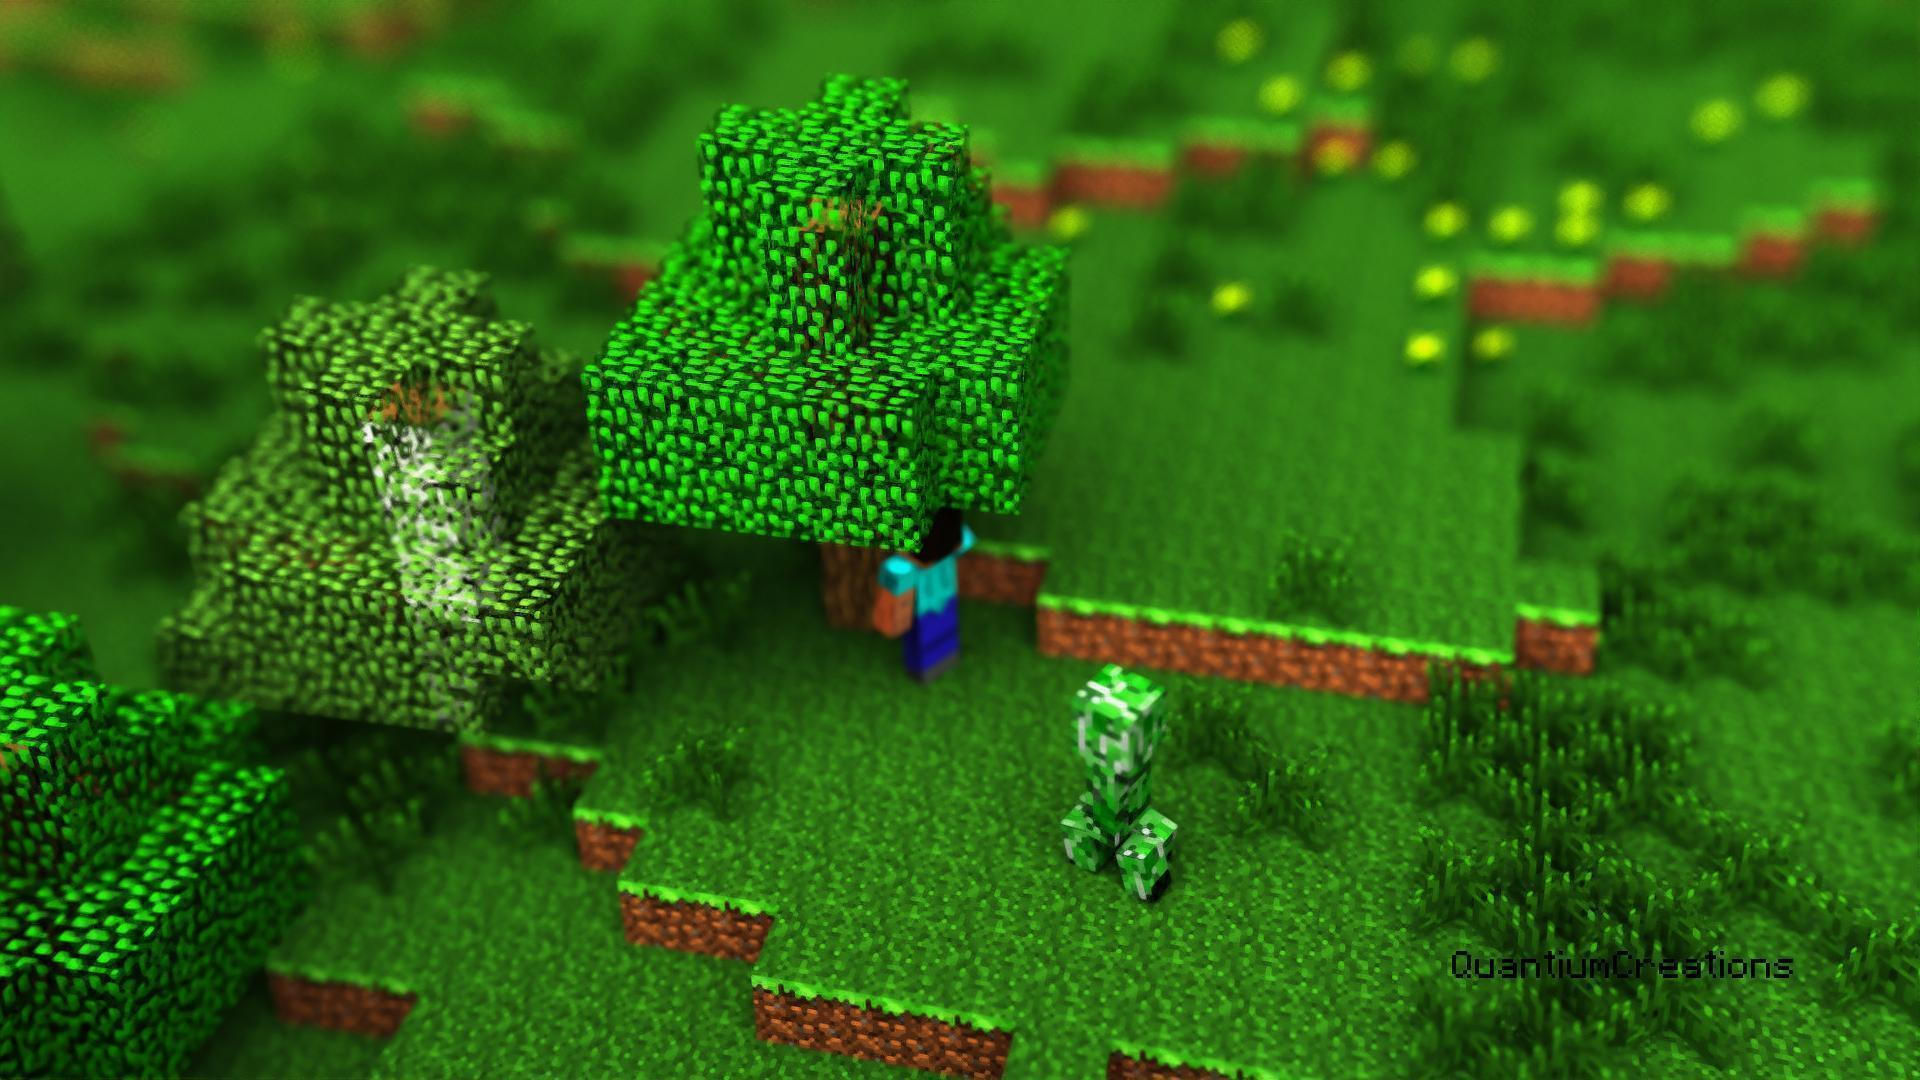 wallpaper hd minecraft green - photo #13